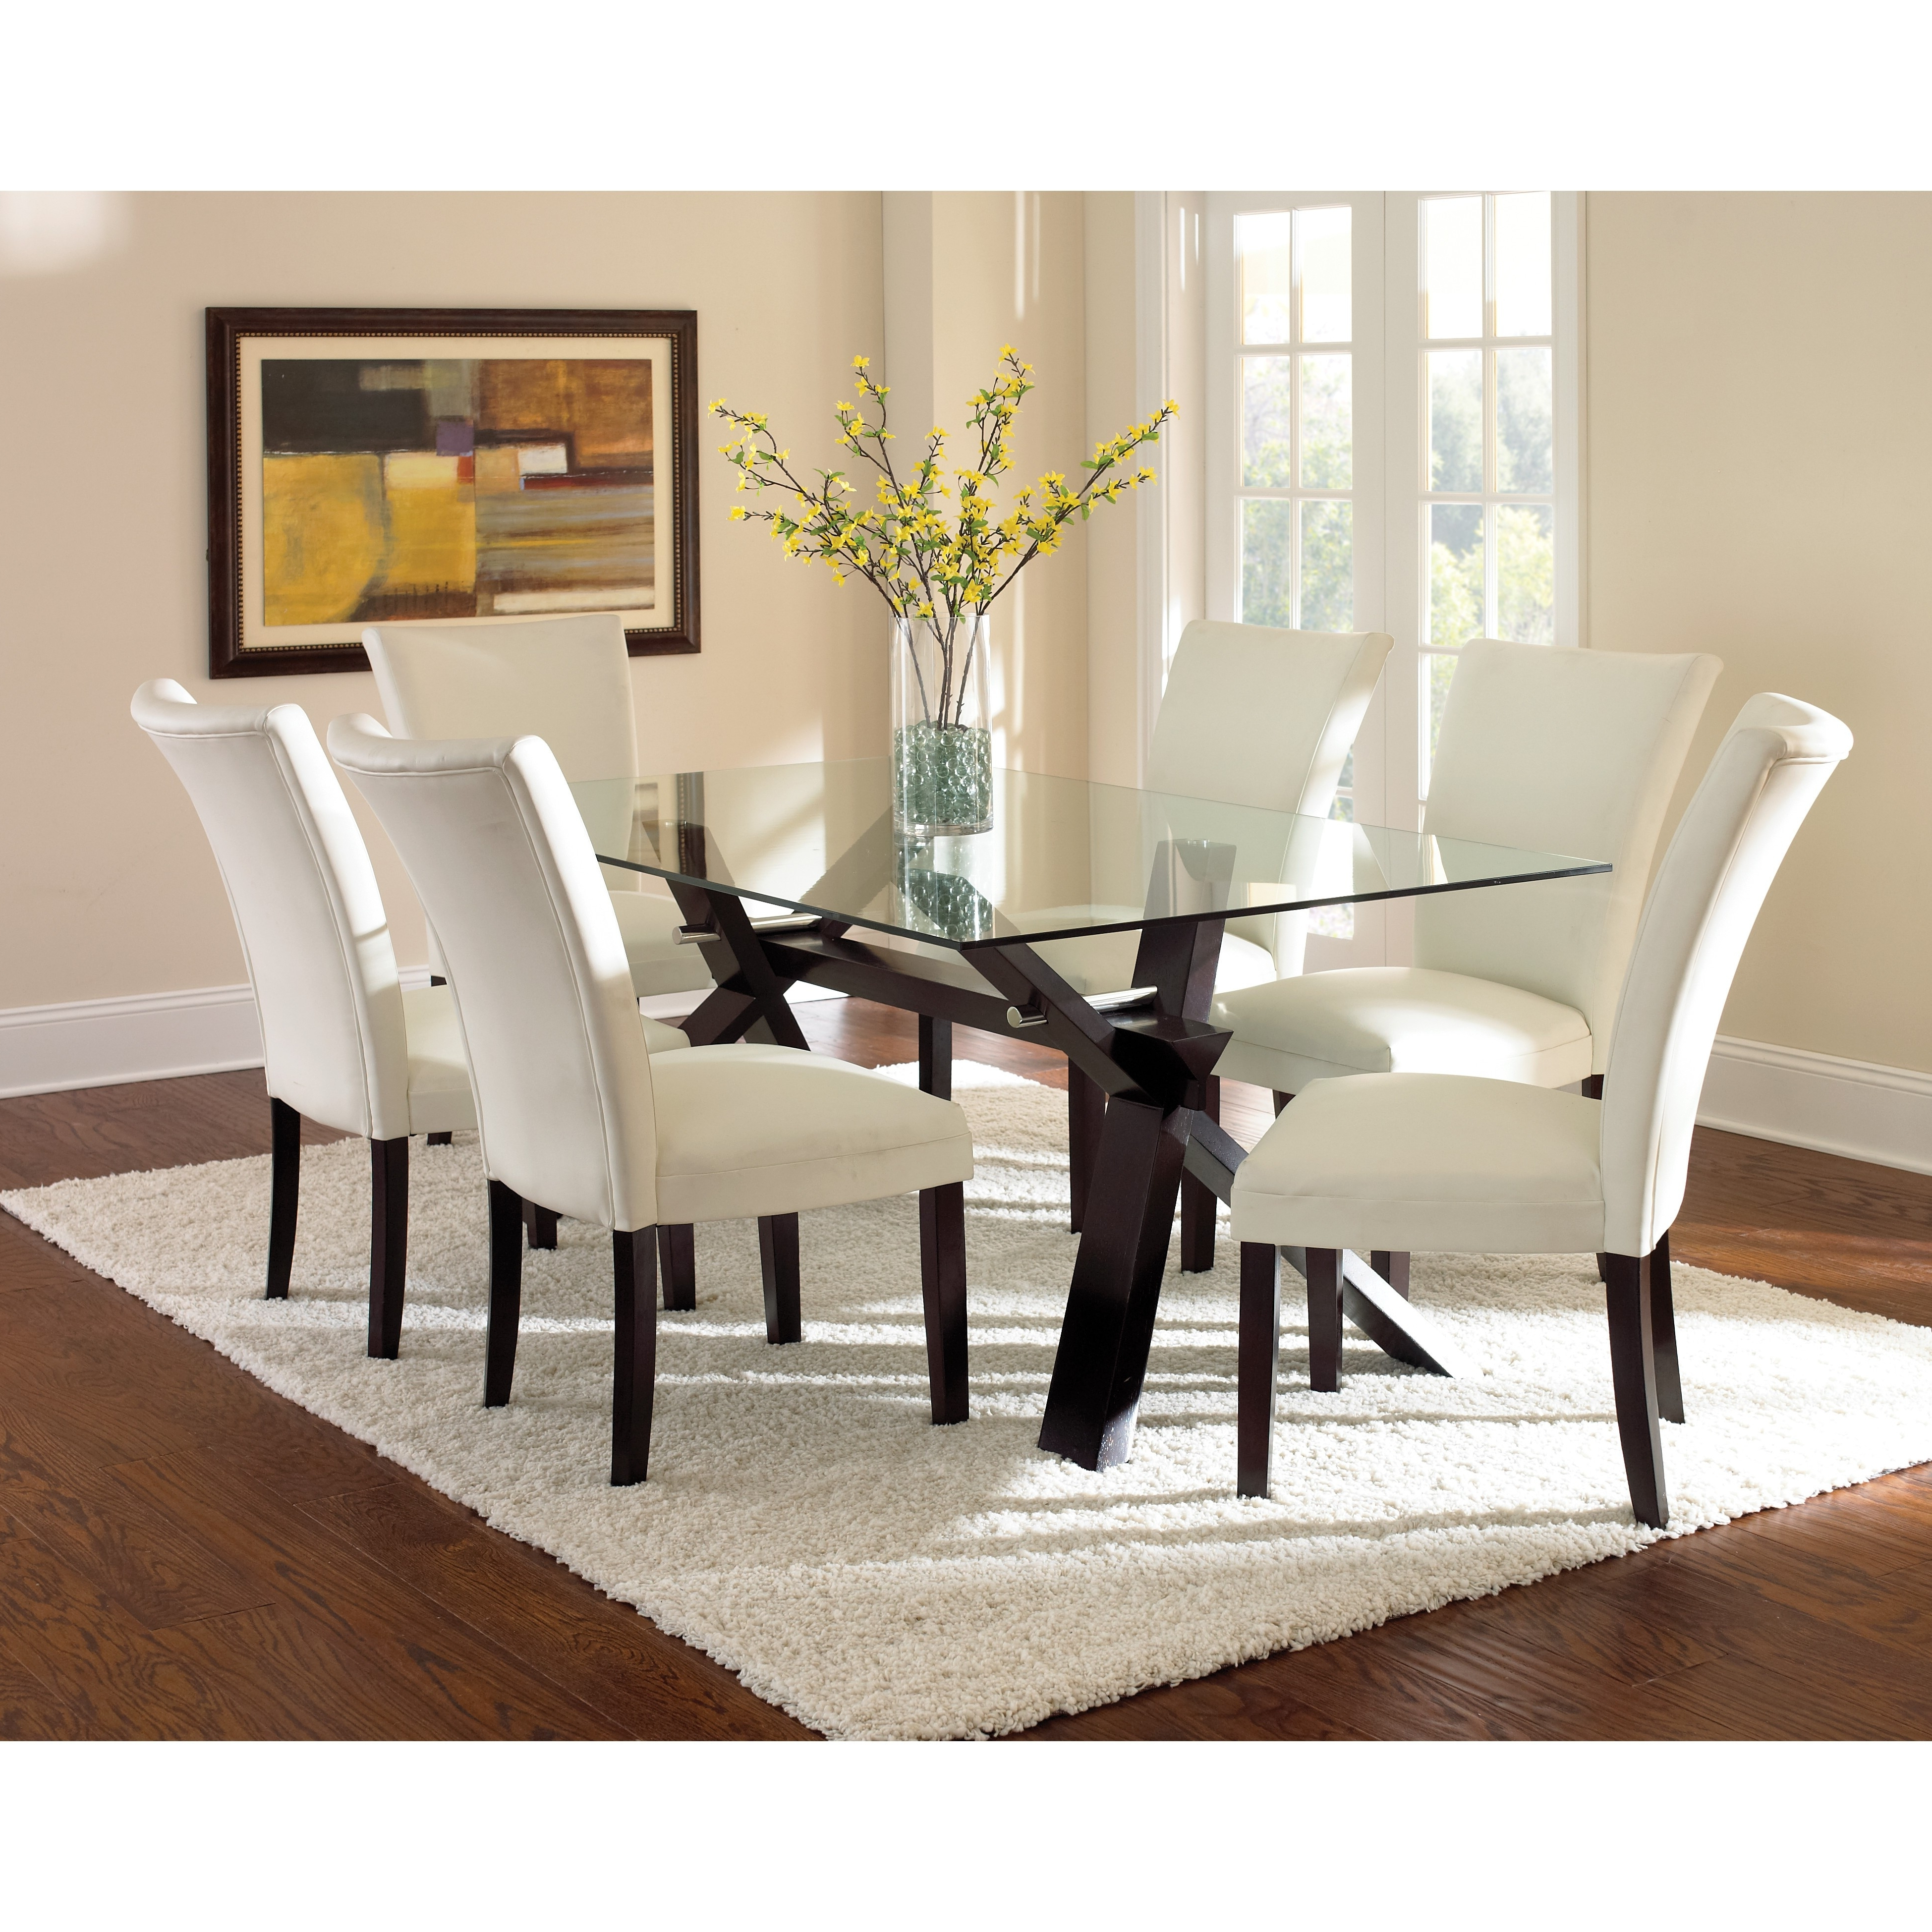 Round Smoked Glass Dining Table Elegant Modern Oval Glass Top Dining within Most Recent Smoked Glass Dining Tables And Chairs